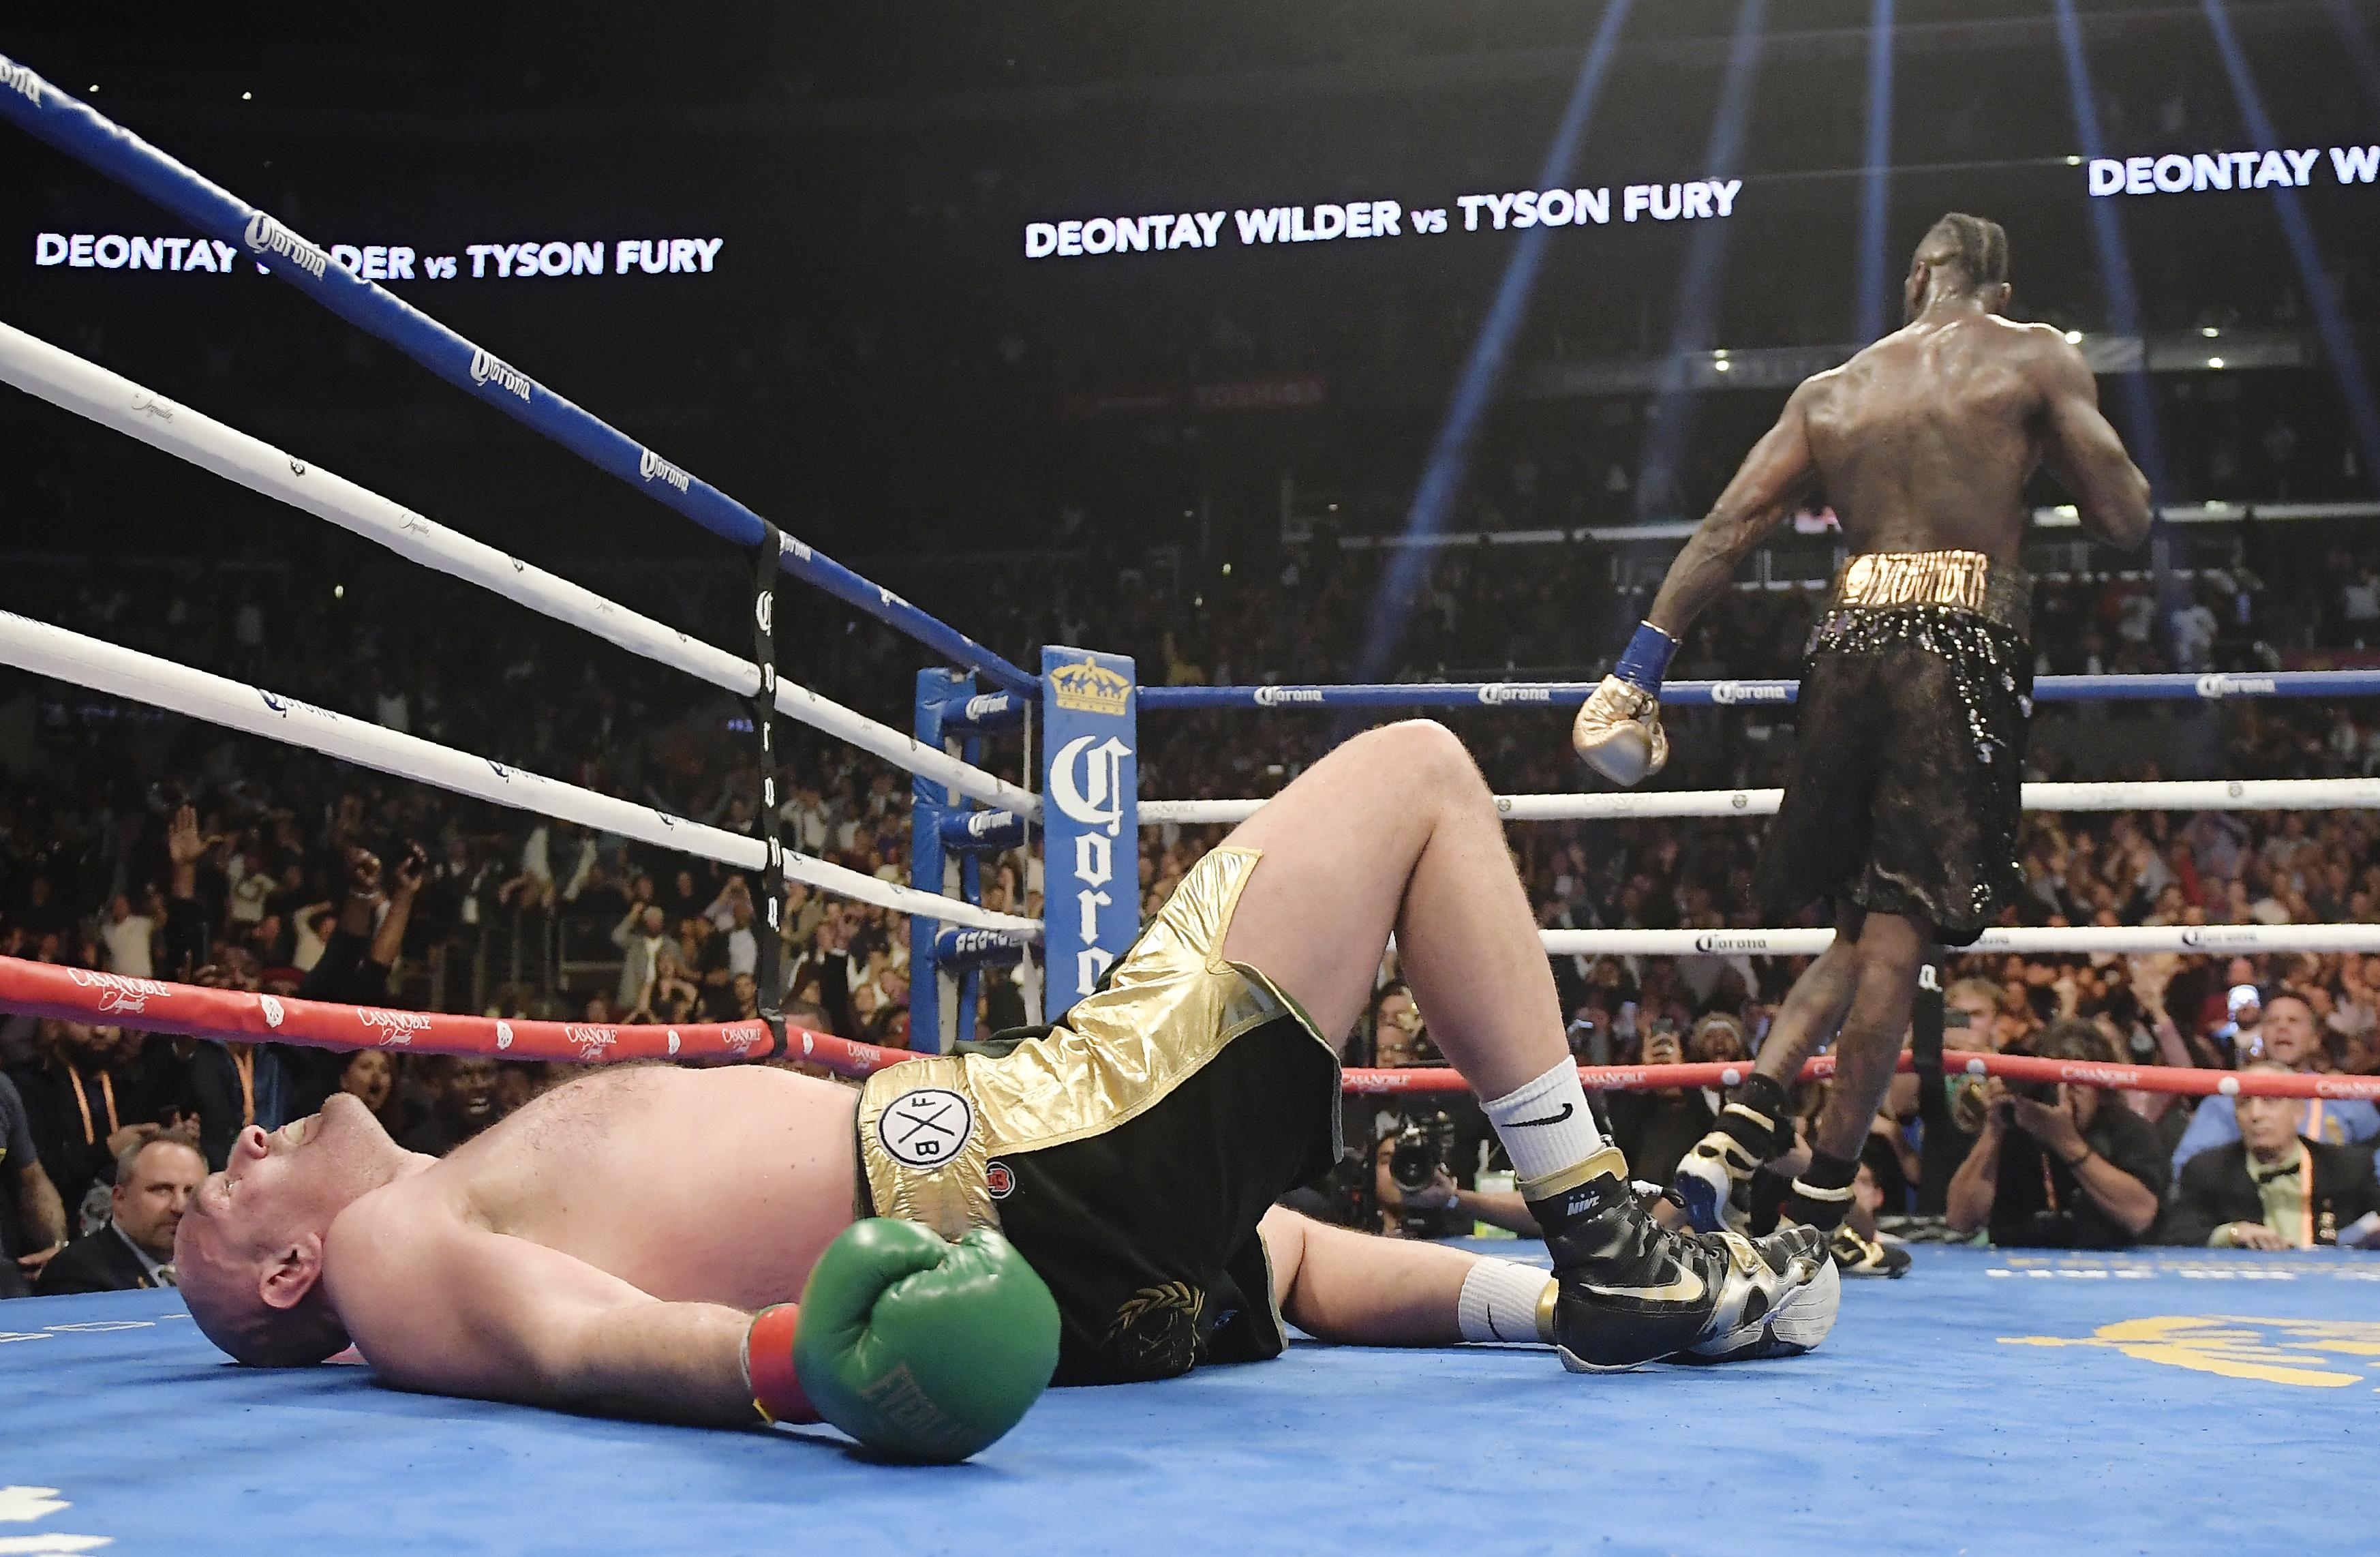 Wilder dropped Fury twice, with the Brit rising from the canvas in the final round to avoid defeat